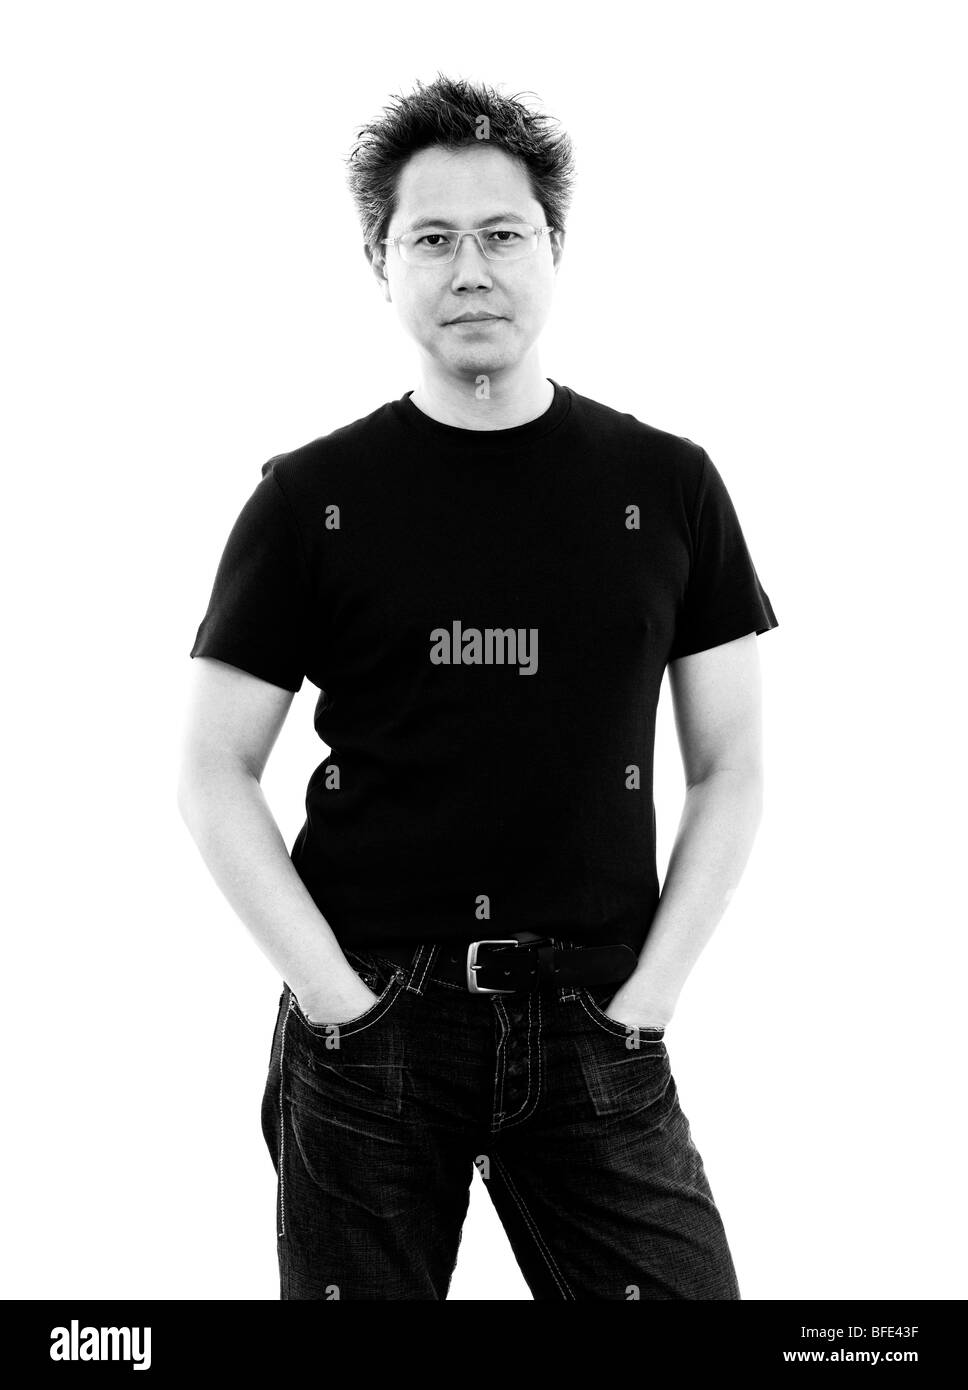 44 year old Asian male wearing jeans and a t-shirt standing against a white background - Stock Image